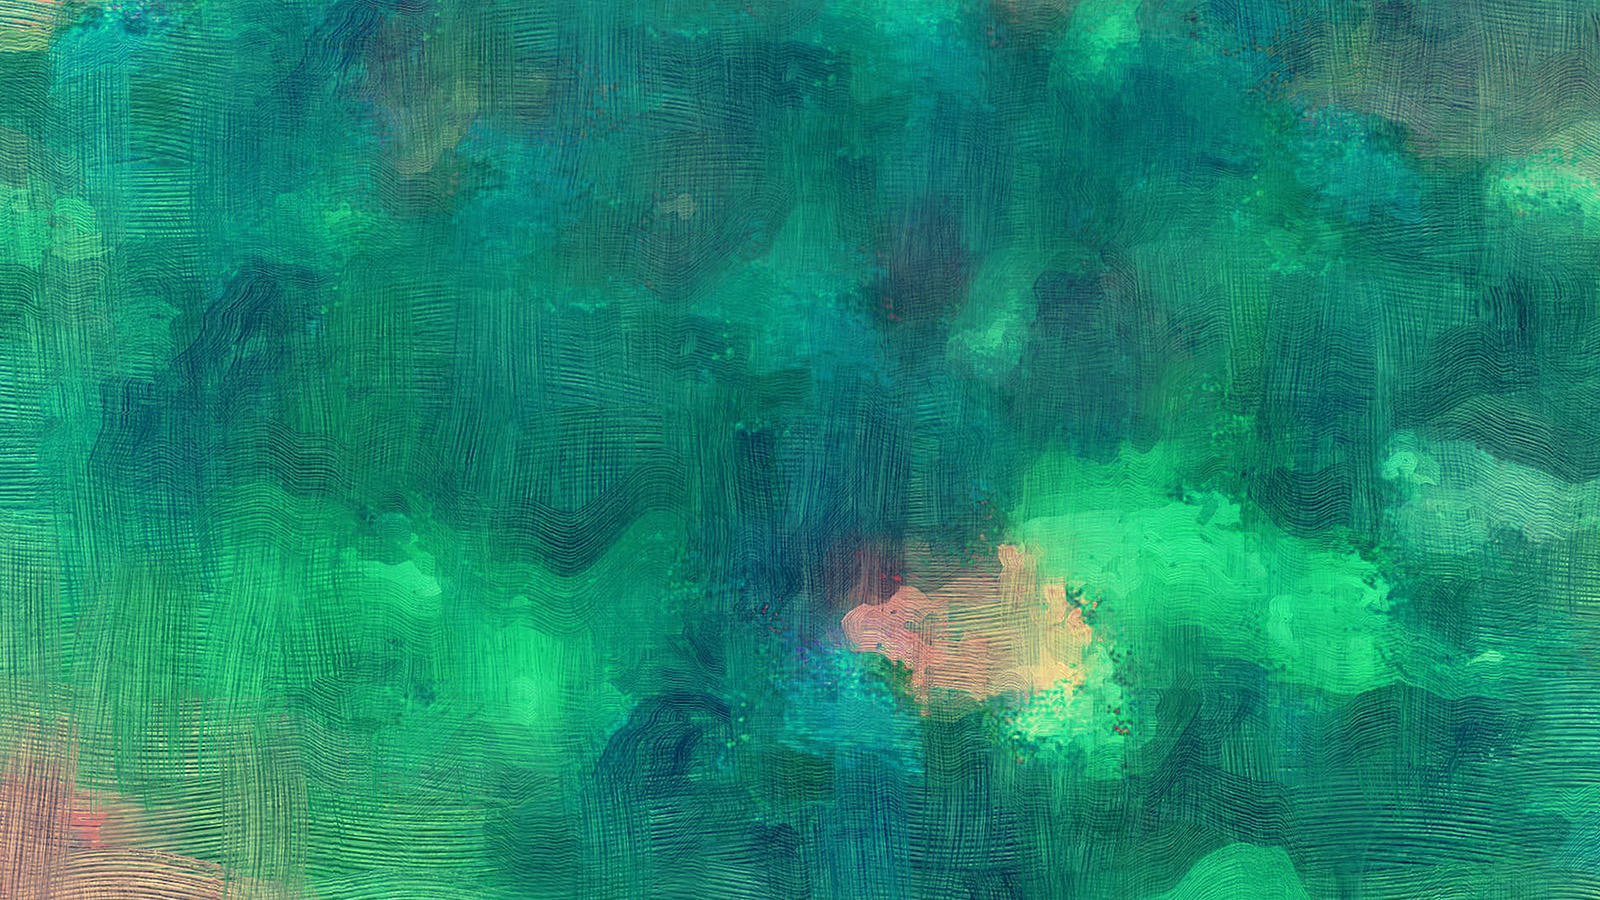 Google Wallpaper Images Fall Vl23 Samsung Galaxy Green Texture Art Oil Painting Pattern